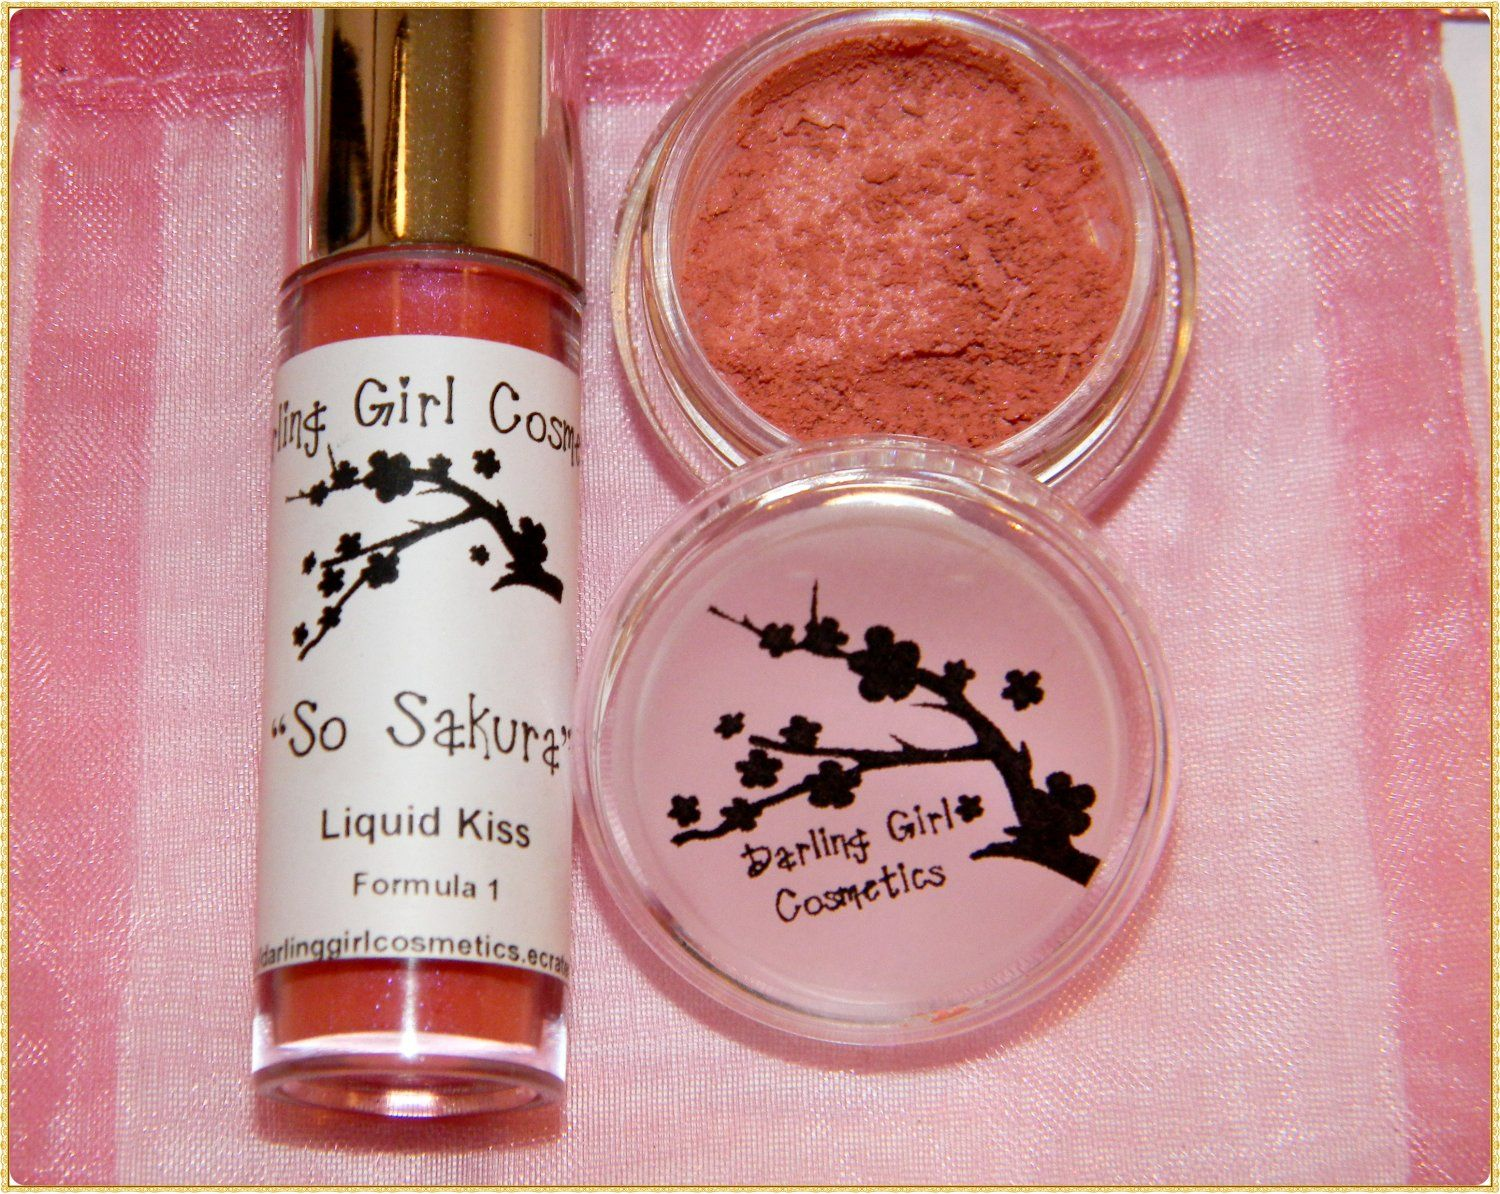 So Sakura gift set  ♥ Darling Girl Cosmetics Eye Shadow